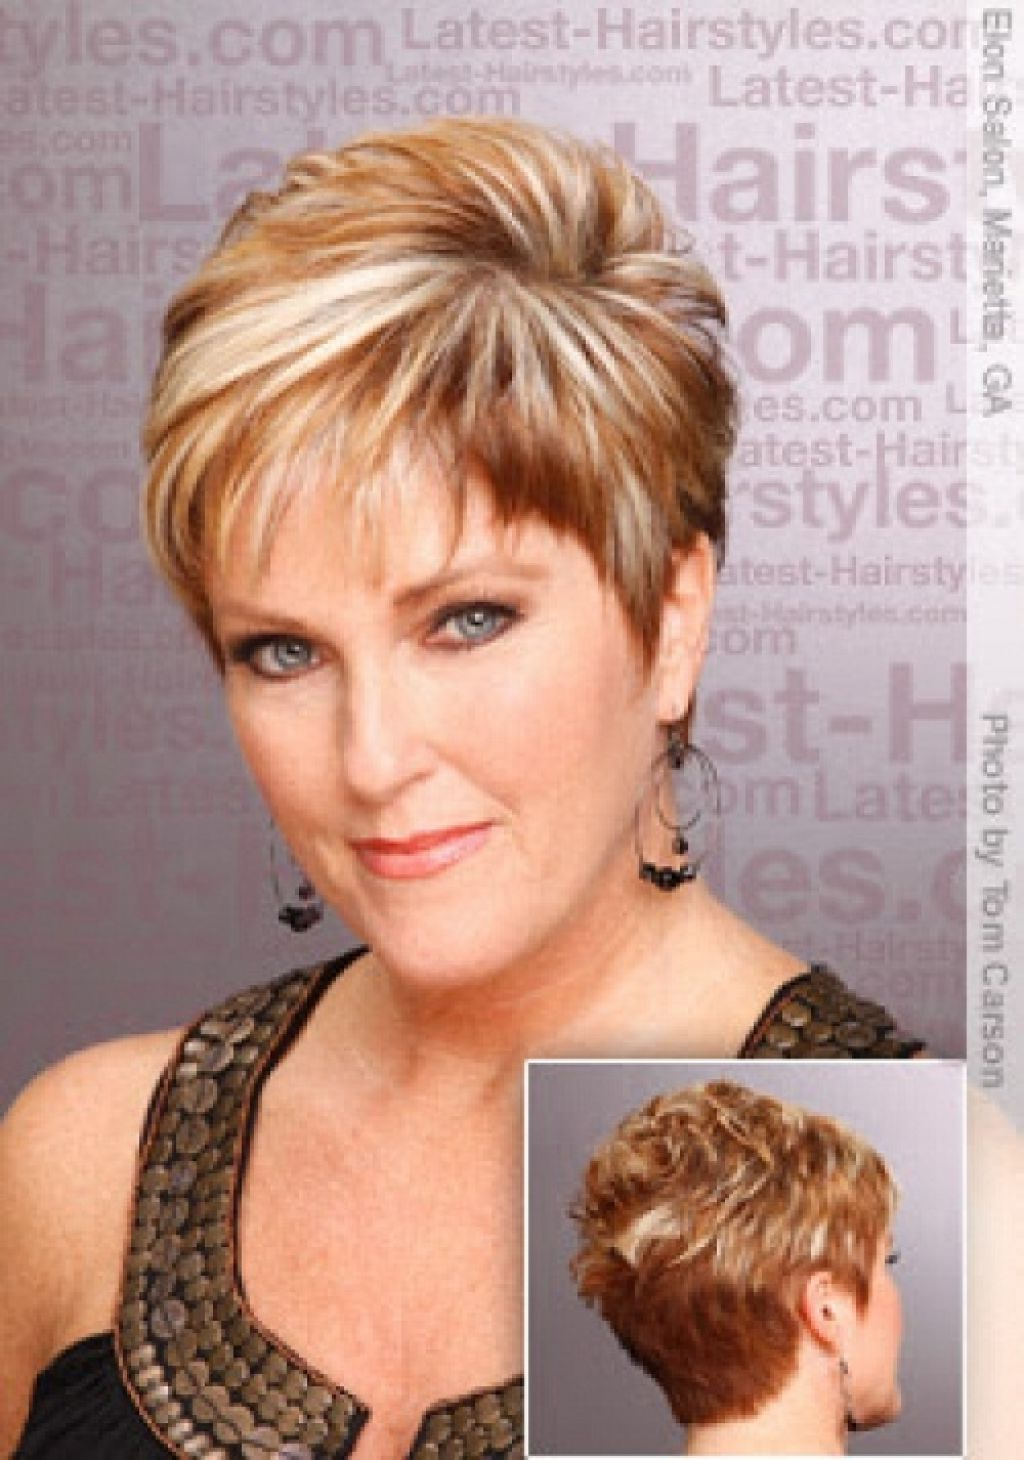 Short Hairstyles 40 Year Old Woman – Hairstyle For Women & Man Regarding Short Hairstyles For 60 Year Old Woman (View 4 of 25)